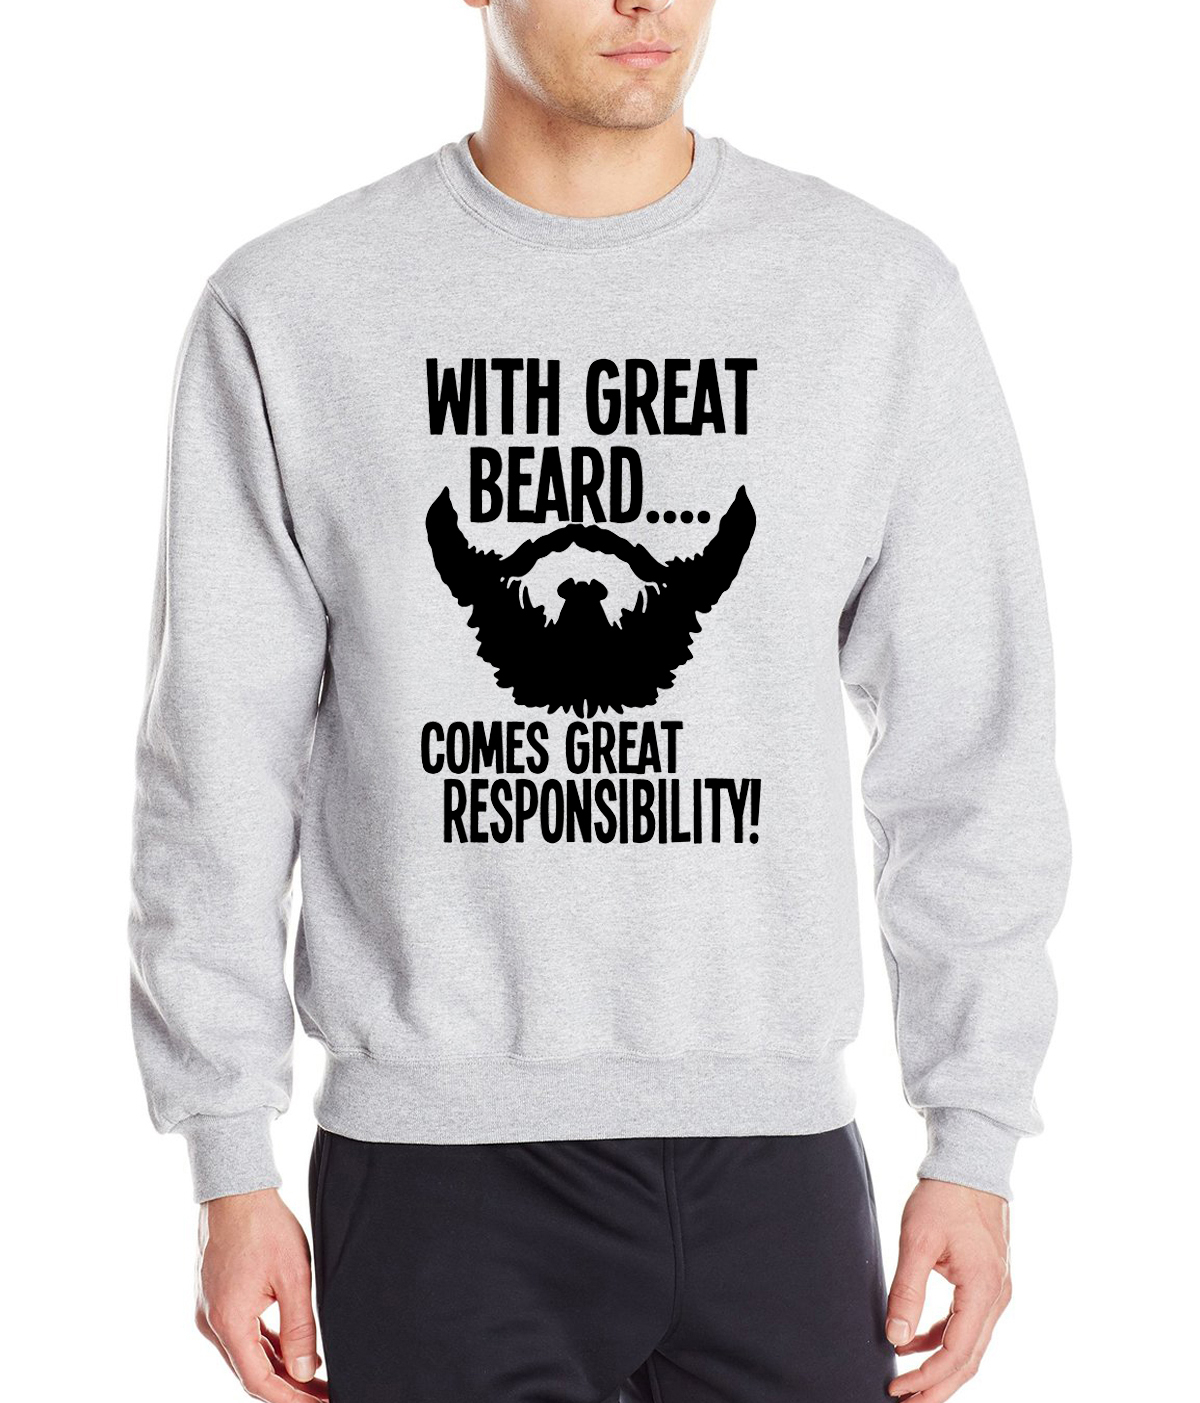 funny men clothing With Great Beard Comes Great Responsibility print 2019 new style spring winter fashion men sweatshirt hoodies